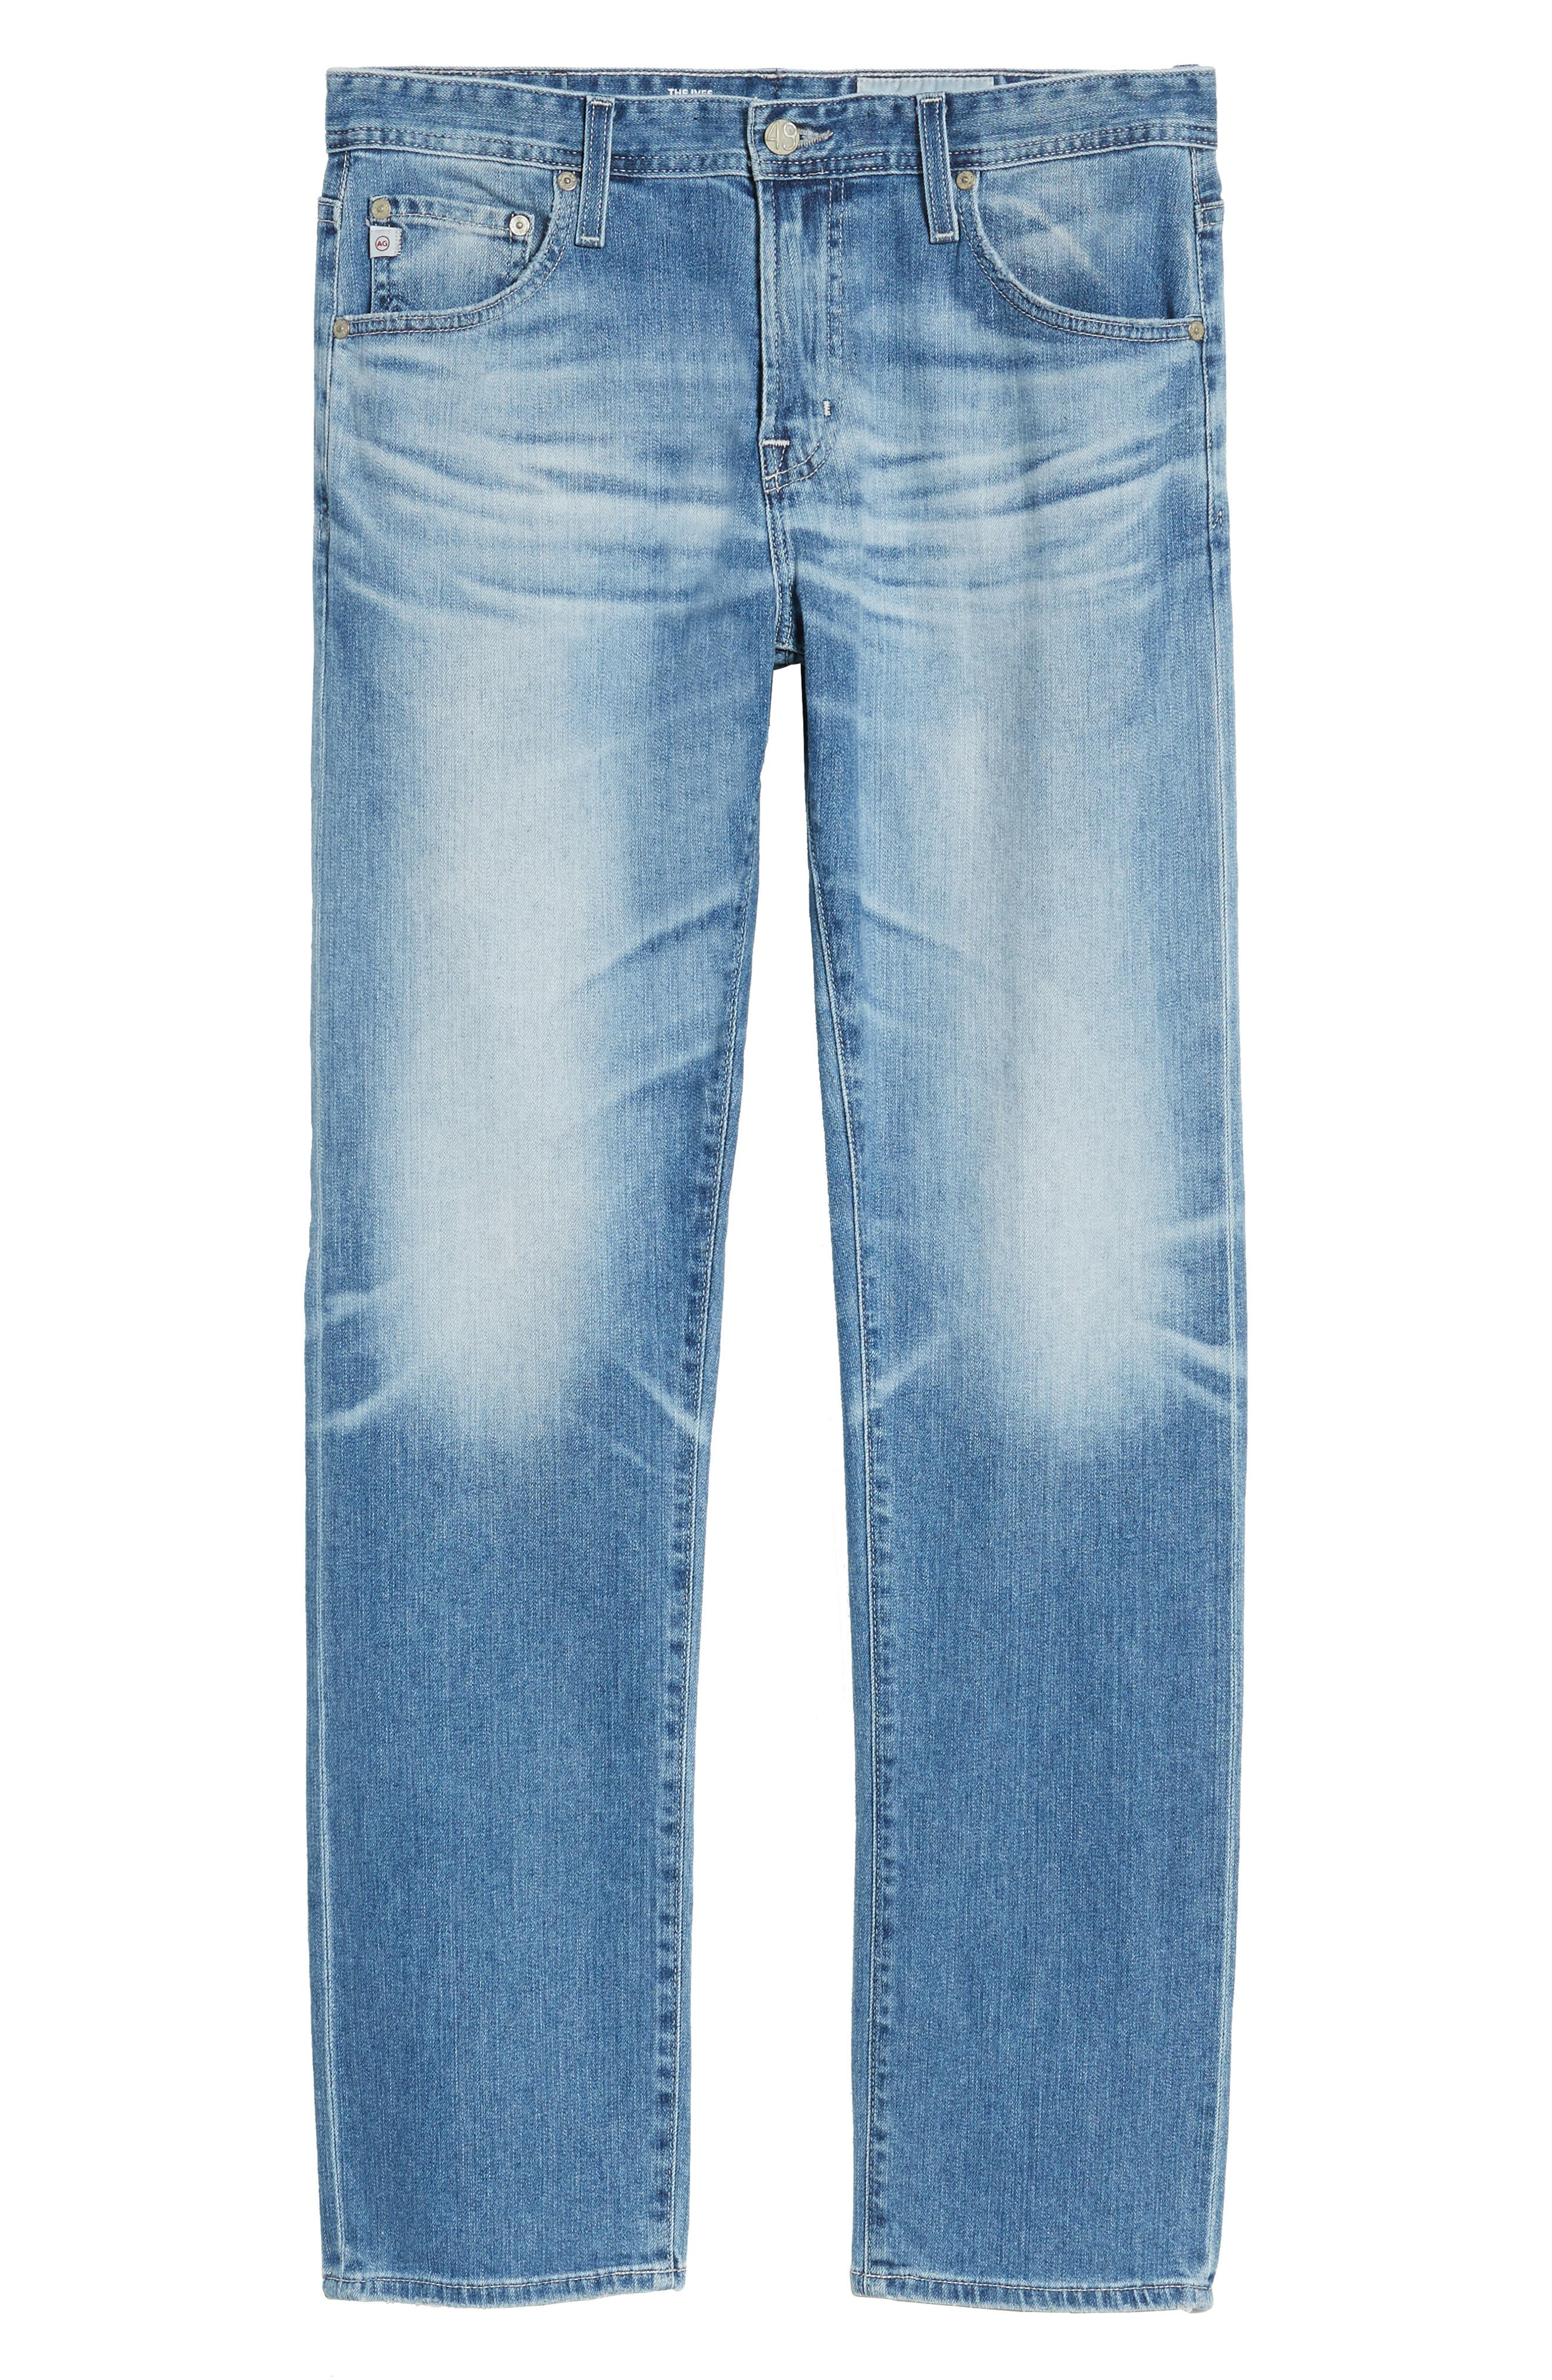 Ives Straight Leg Jeans,                             Alternate thumbnail 6, color,                             15 Years Aground